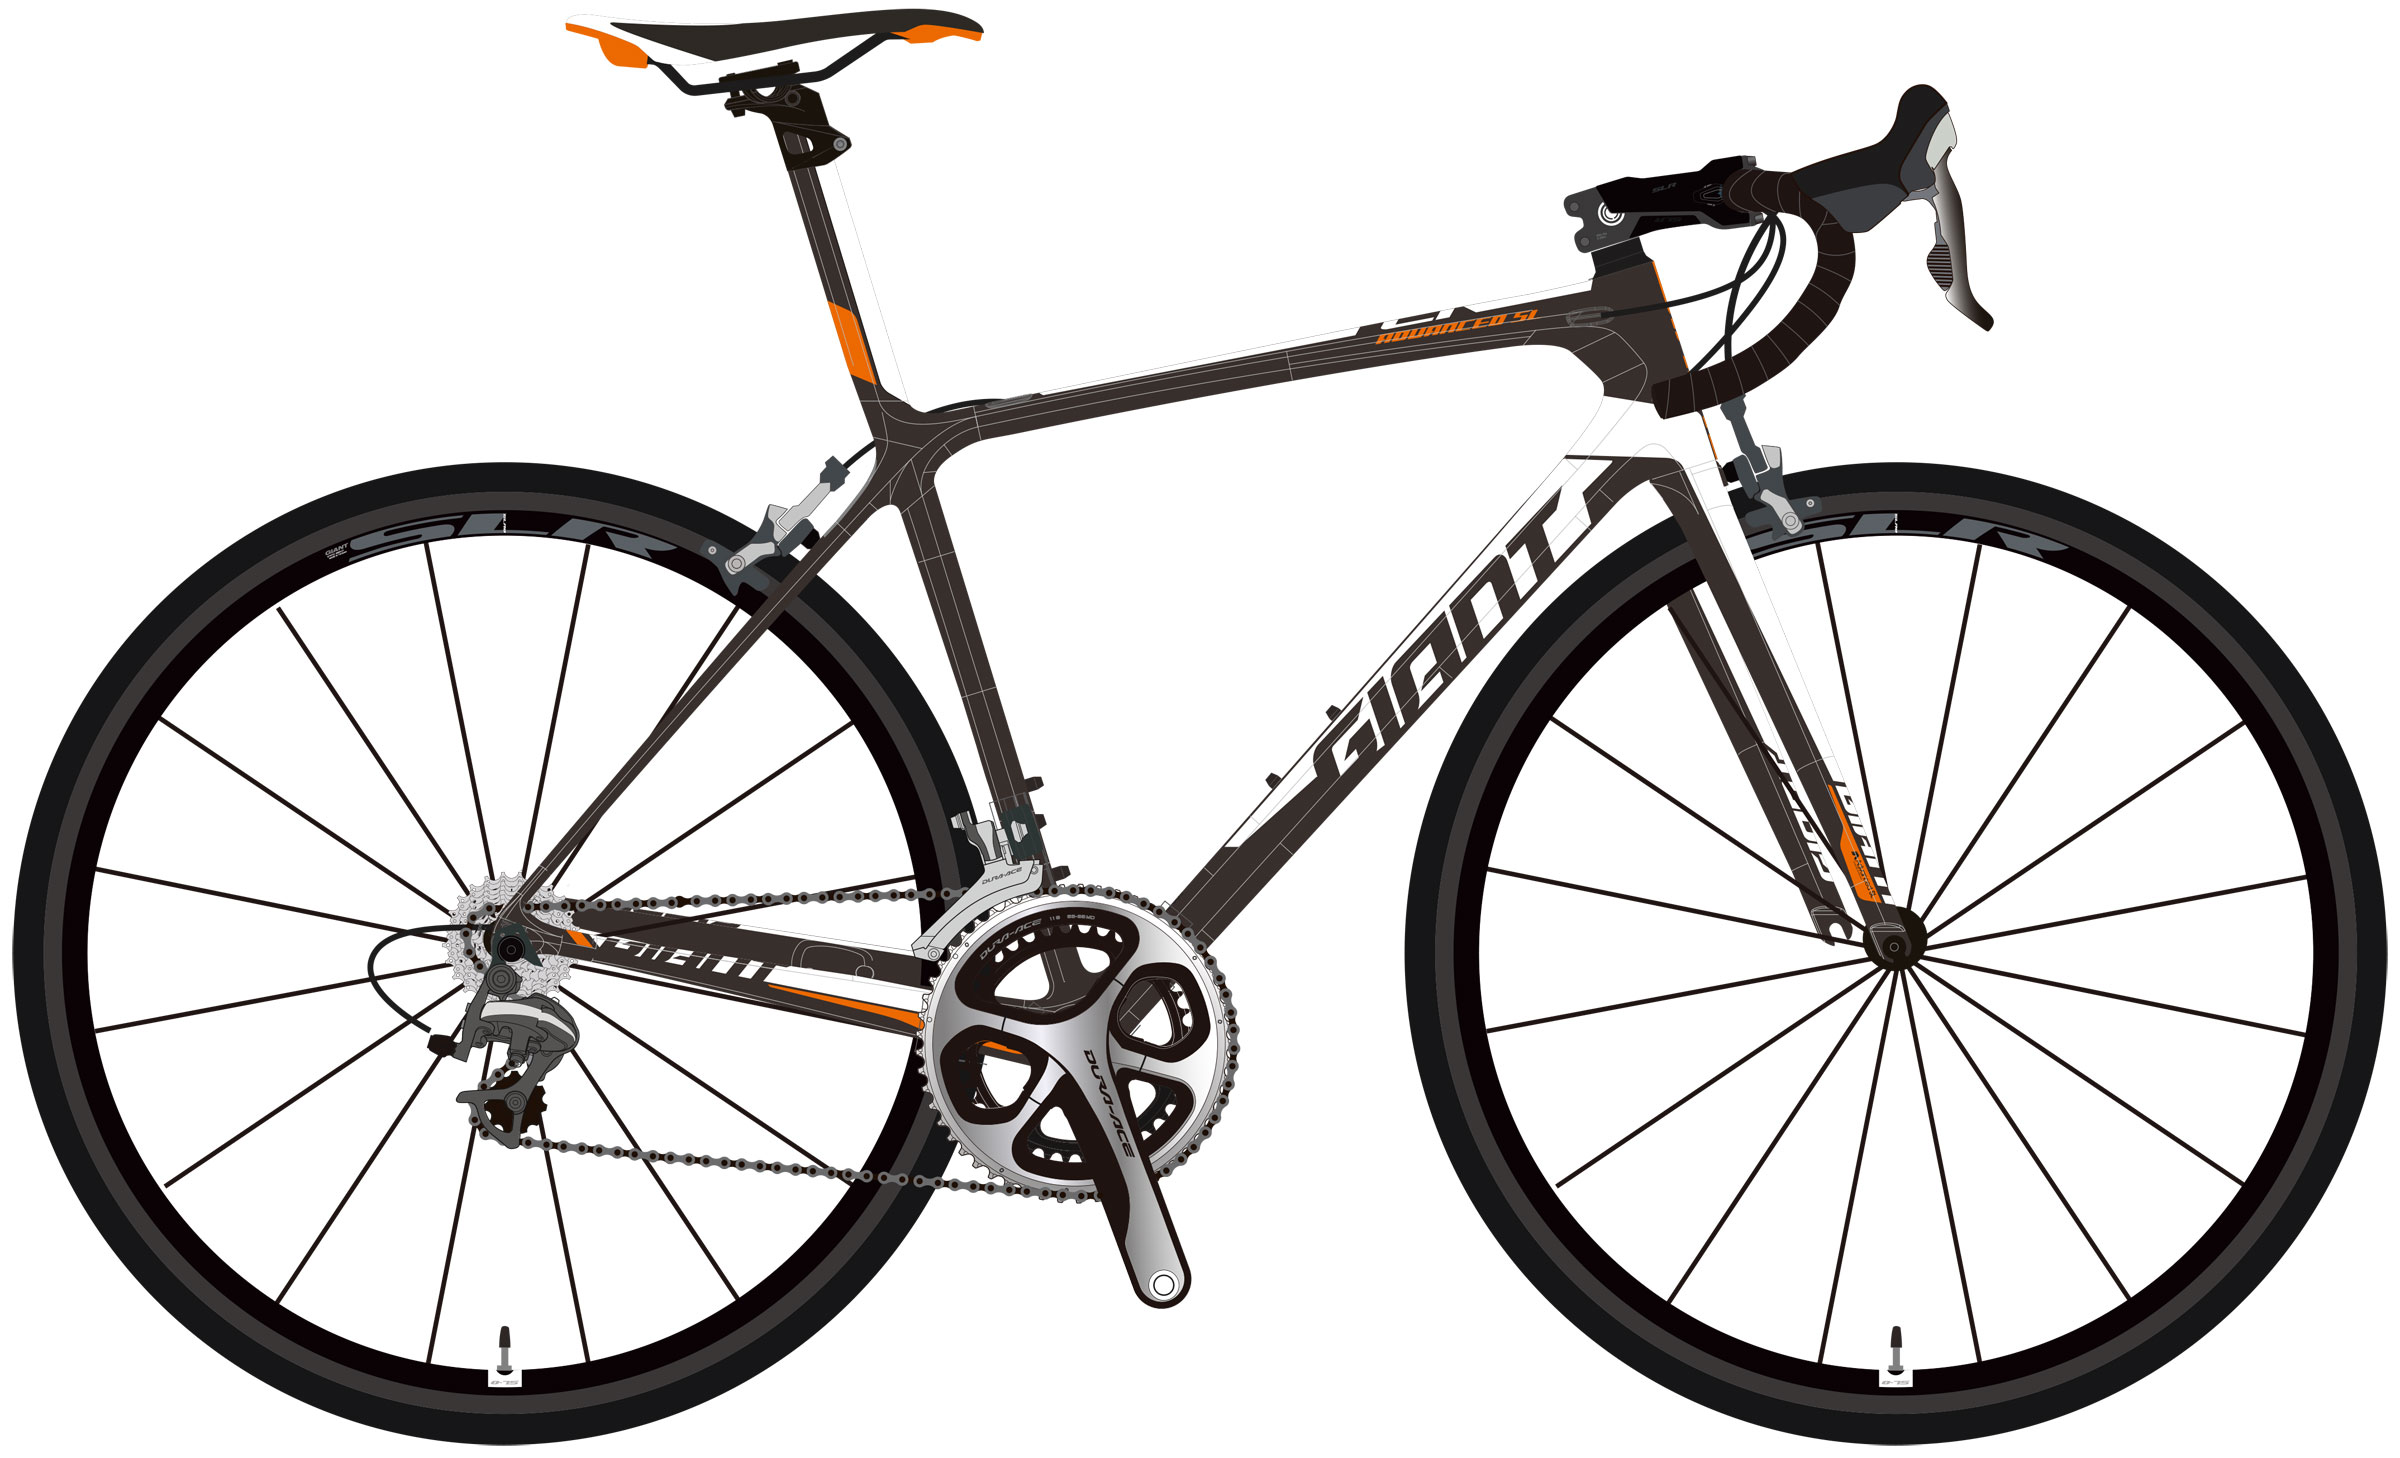 3475573d140 Giant TCR Advanced SL 1 ISP - High Peaks Cyclery - Lake Placid, NY